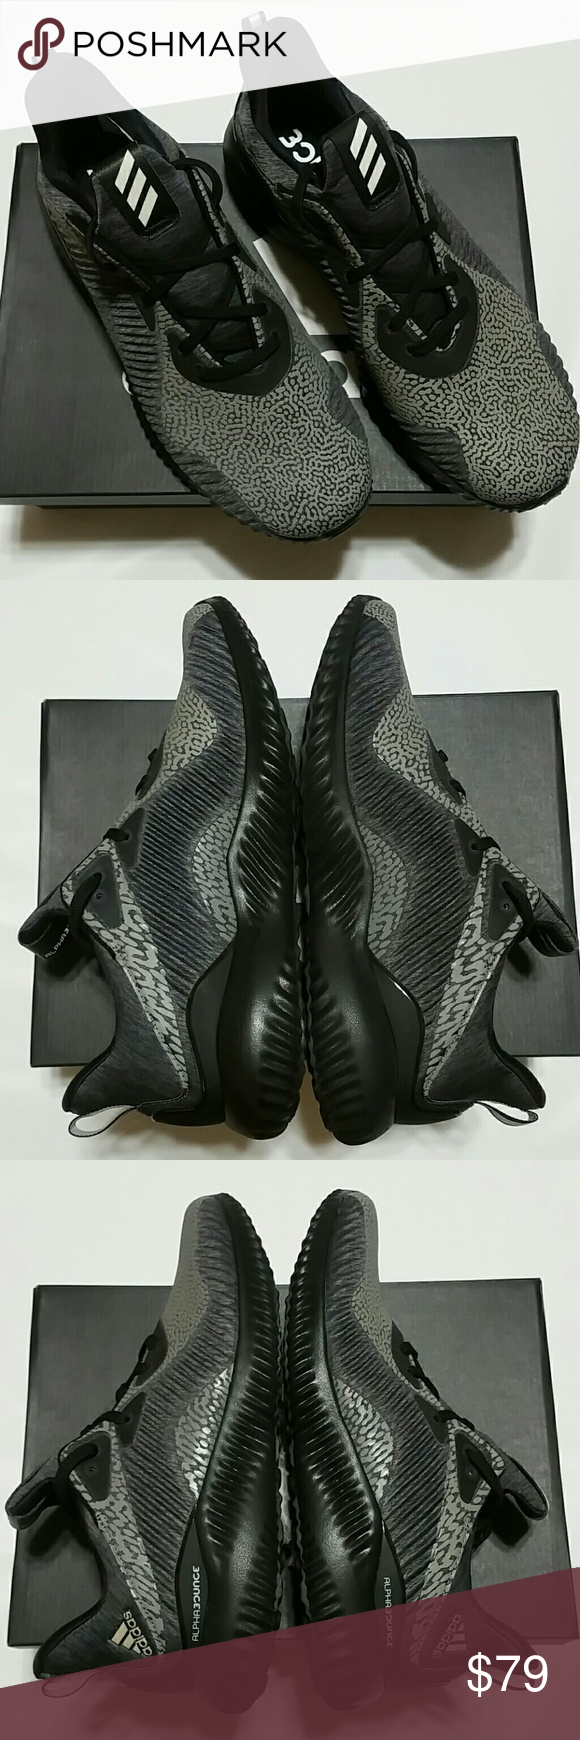 6a10921a12563 adidas alphabounce hpc ams men s Brand New In Box Pair Of Authentic adidas  alphabounce hpc ams m Size 8.5 Running Style DA9561 adidas Shoes Sneakers